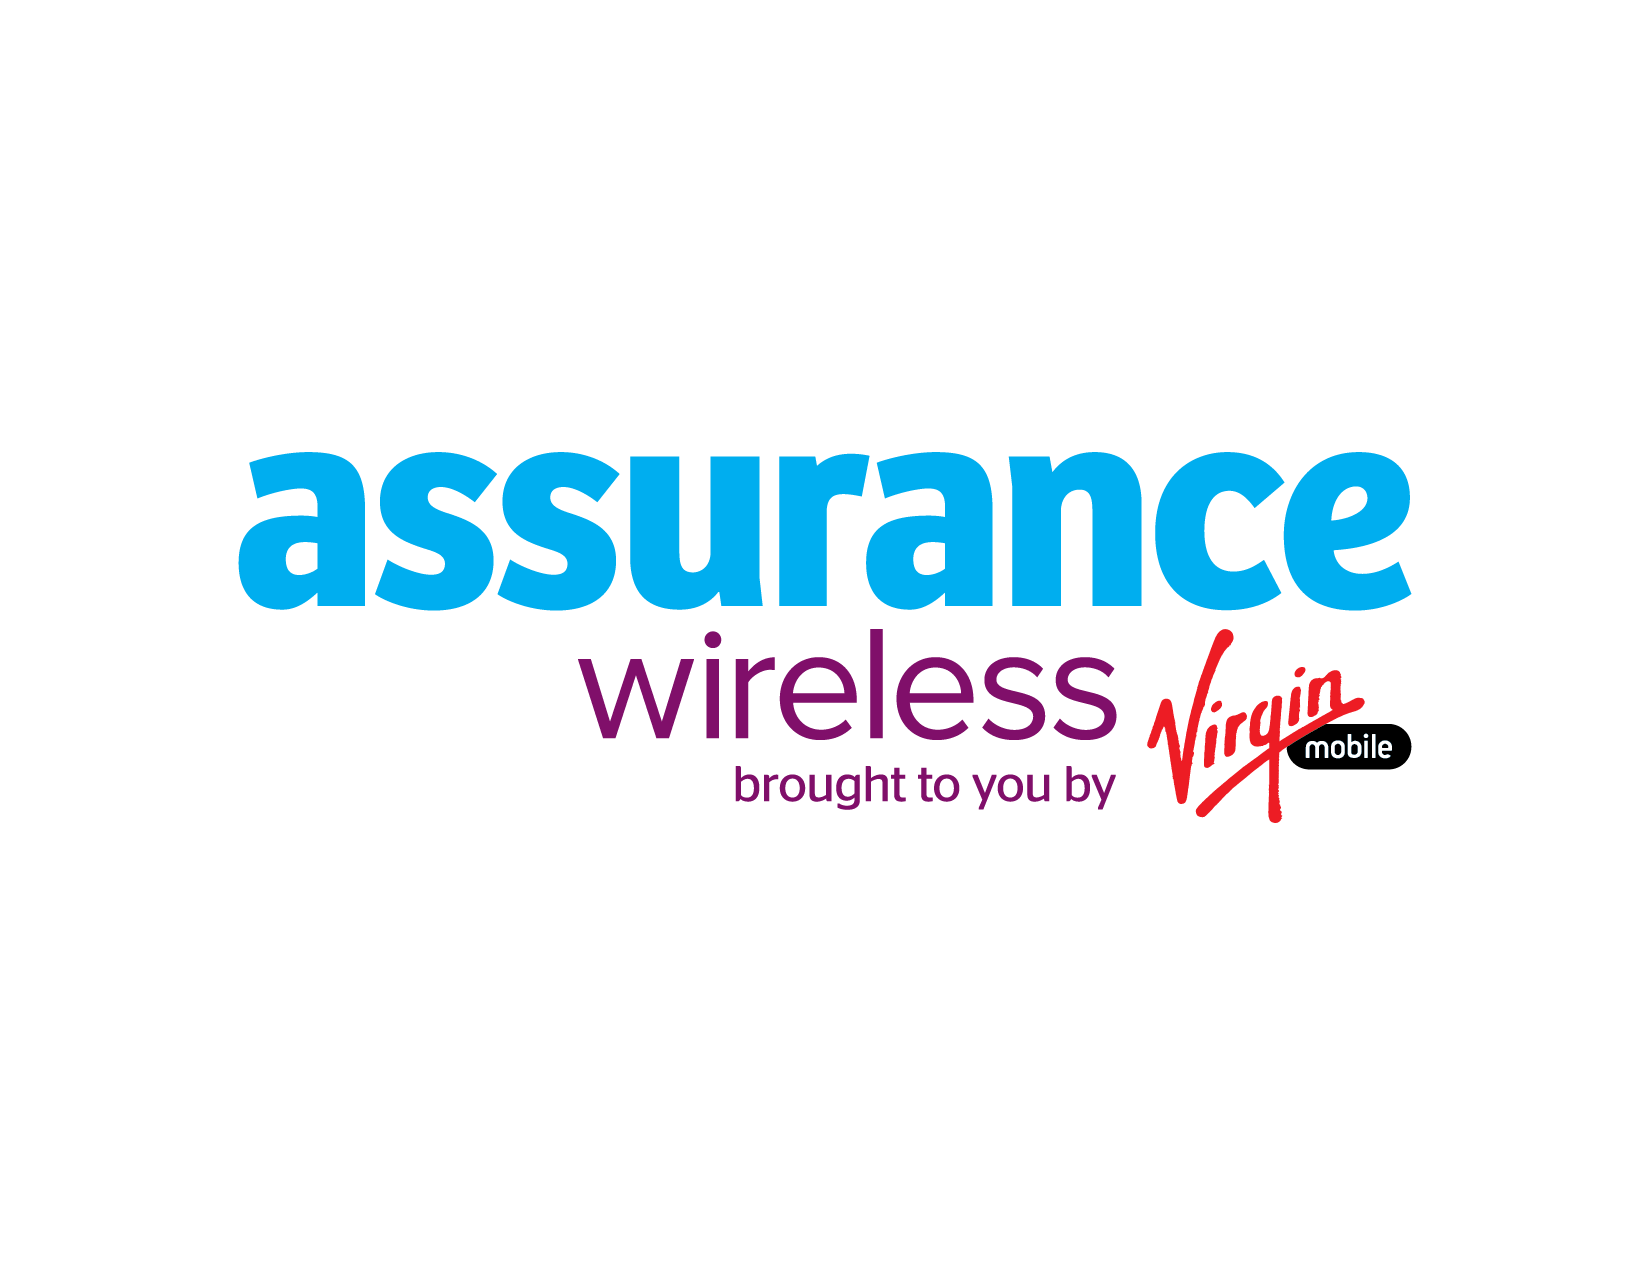 Assurance Wireless Building Opportunities For Self Sufficiency